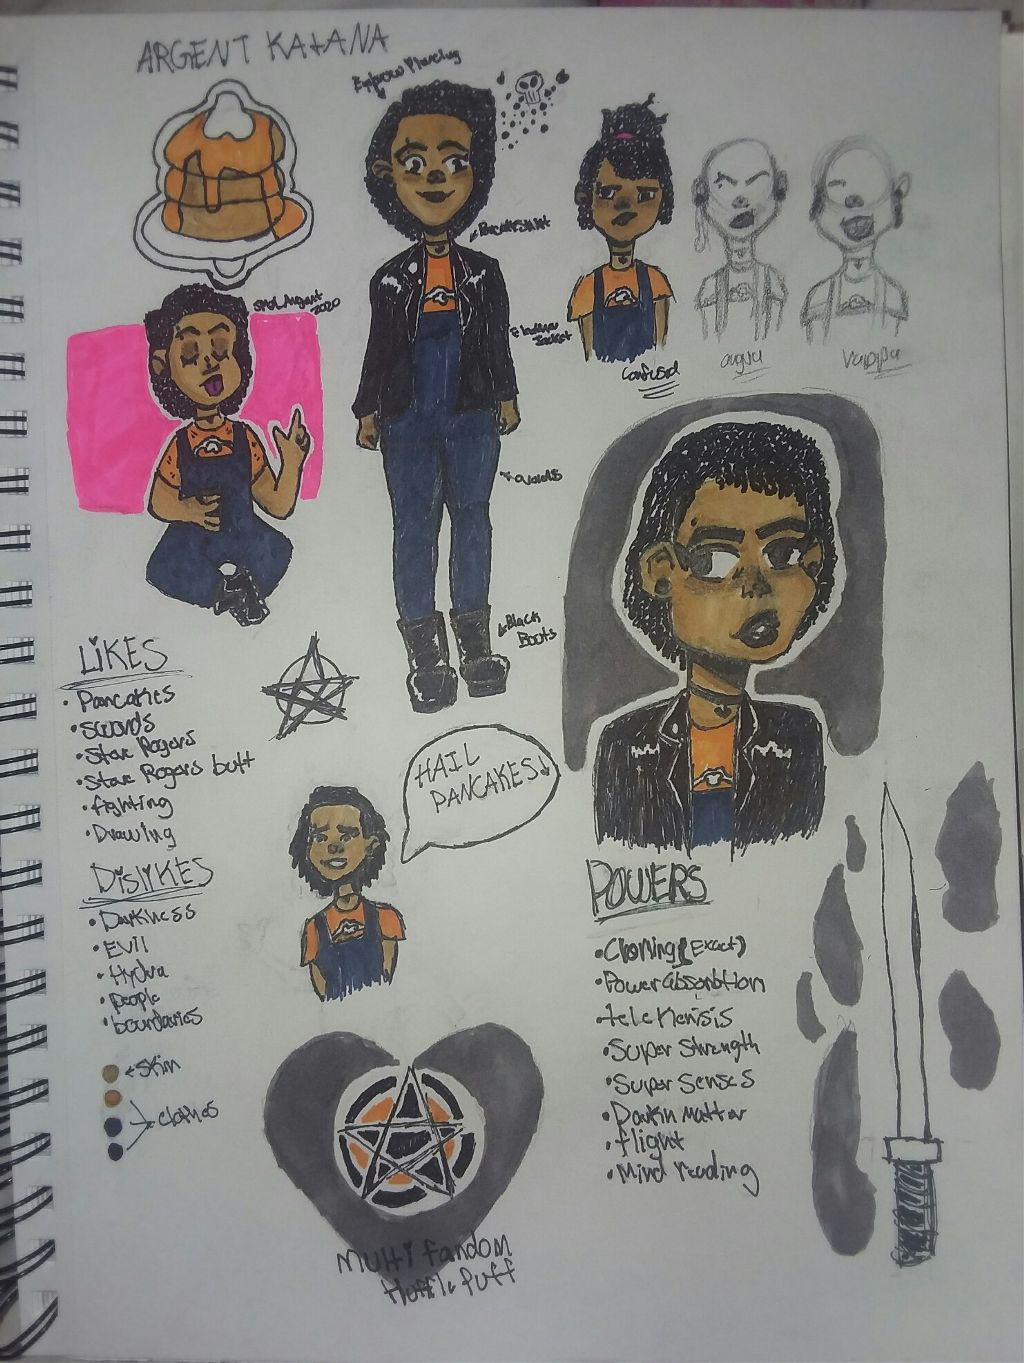 (( this is a character design and break down for Argent based off of my appearance hope you like it tell me what you think! ))    🥞Rp cakes🥞 @smol_loki_uwu  @smol_carol  @smol_gamora_uwu  @smol_lucas  @smol_mackenzie  @smol_sigyn  @ginny_holmes7777777